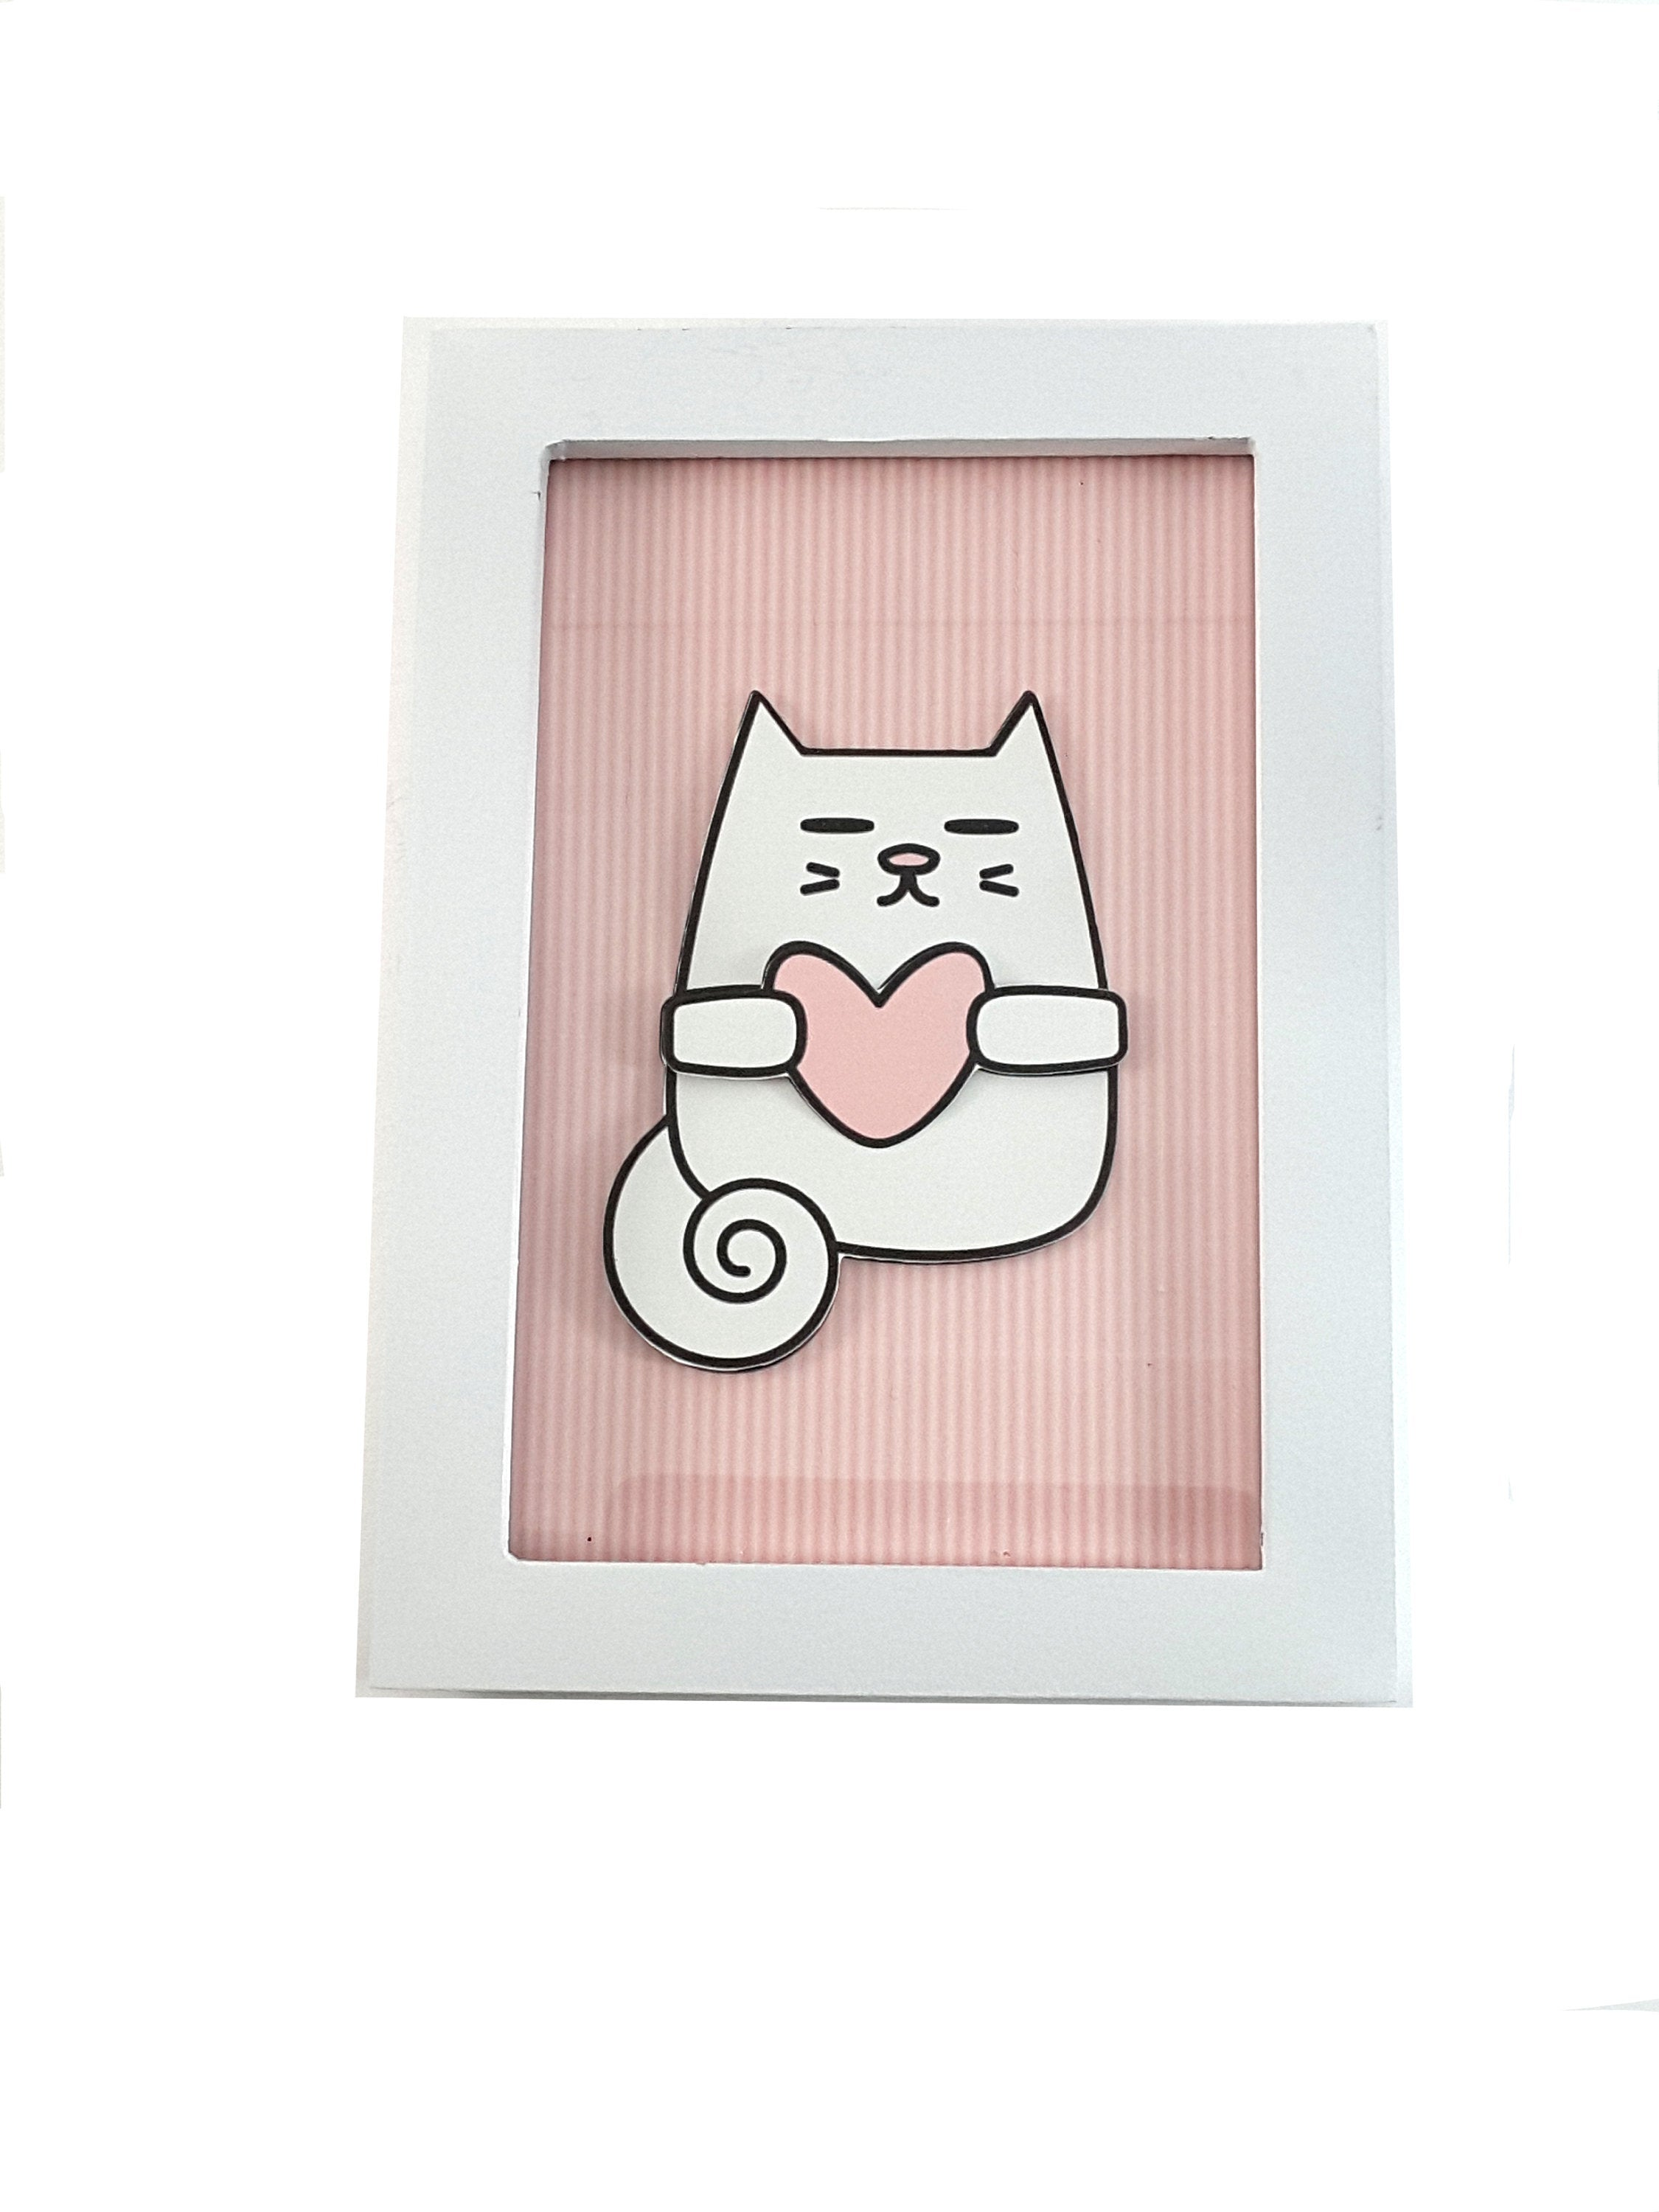 White Framed Print of Cat on Your Choice of 3 Different Backgrounds - TheLastWordBish.com